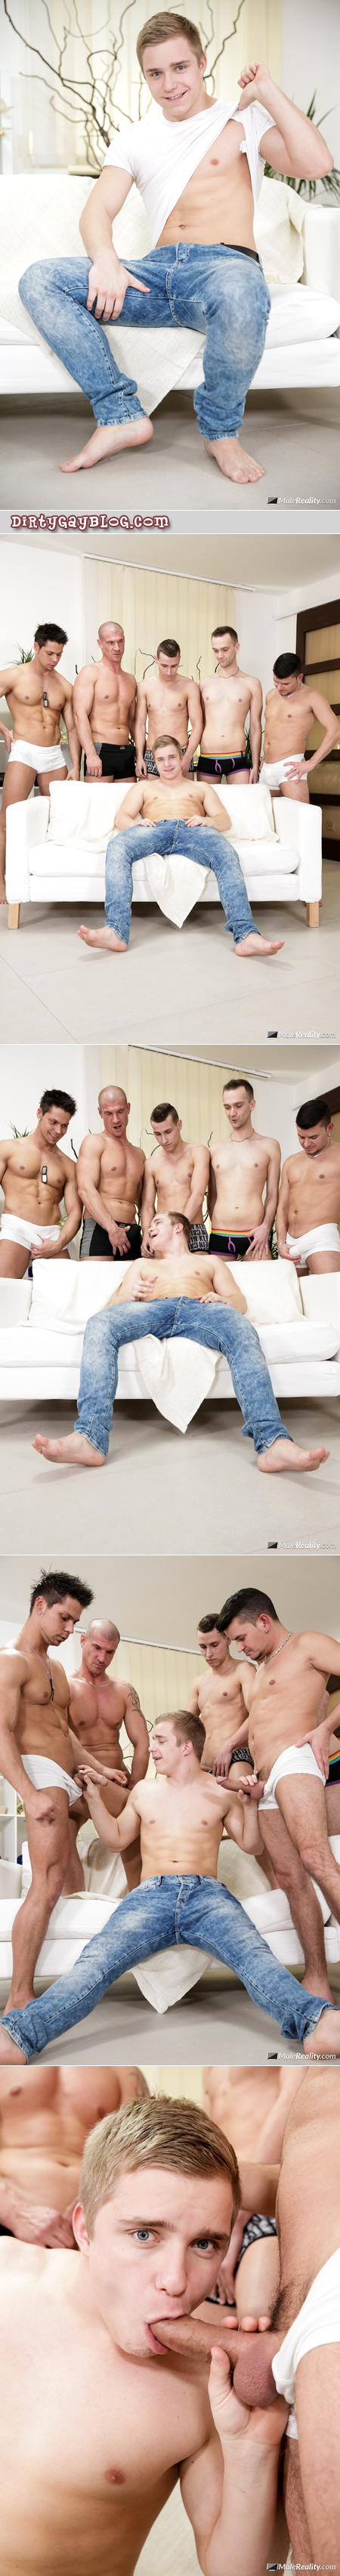 Young man sucking multiple dicks in a gay group sex scene.